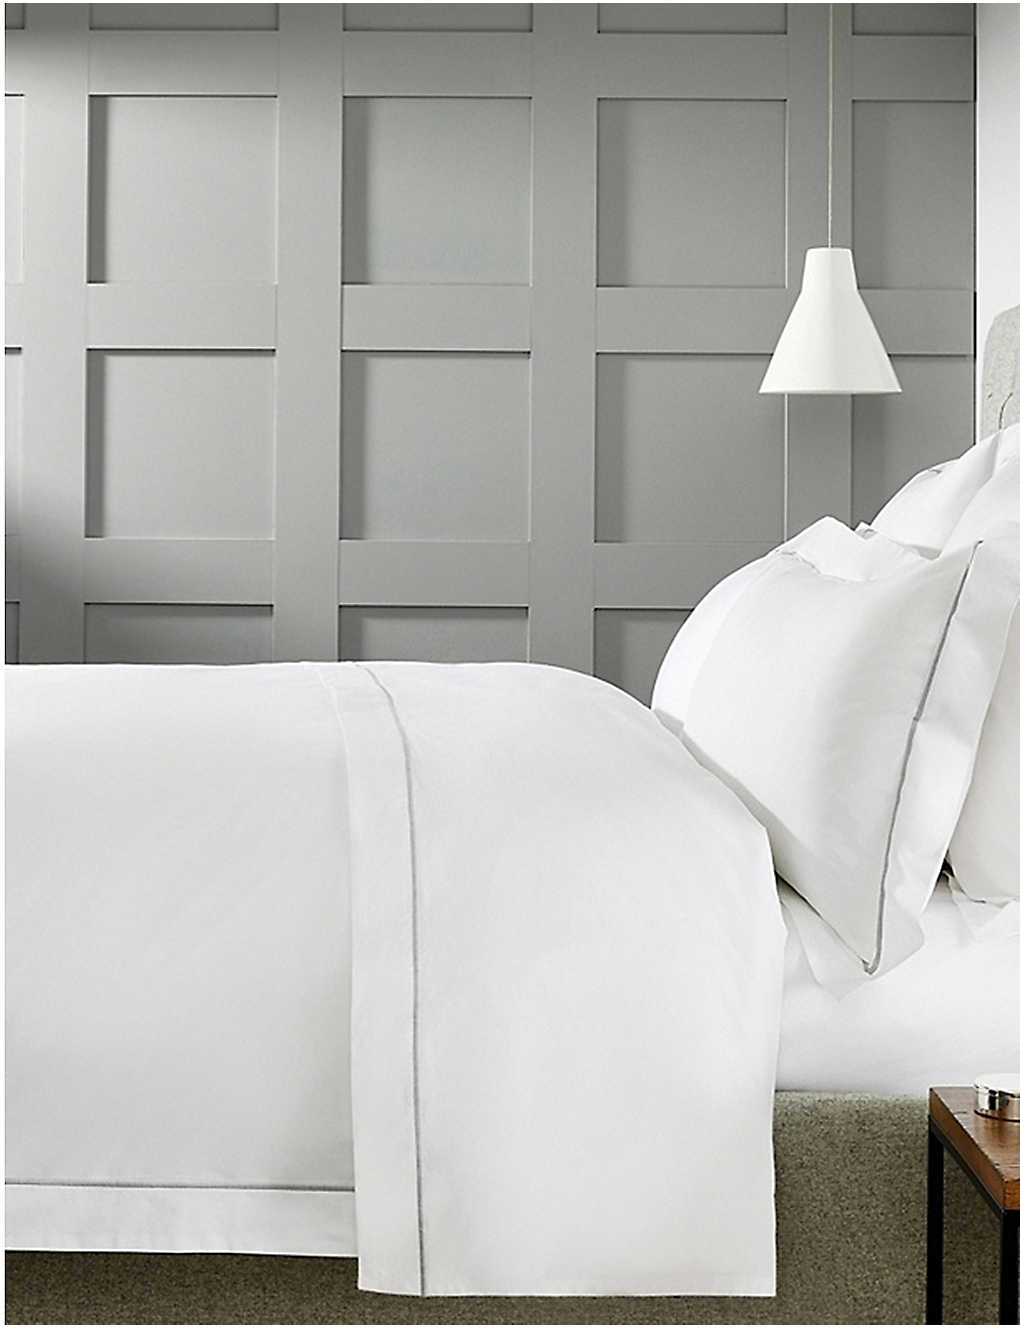 THE WHITE COMPANY: Savoy cotton super king duvet cover 260x220cm